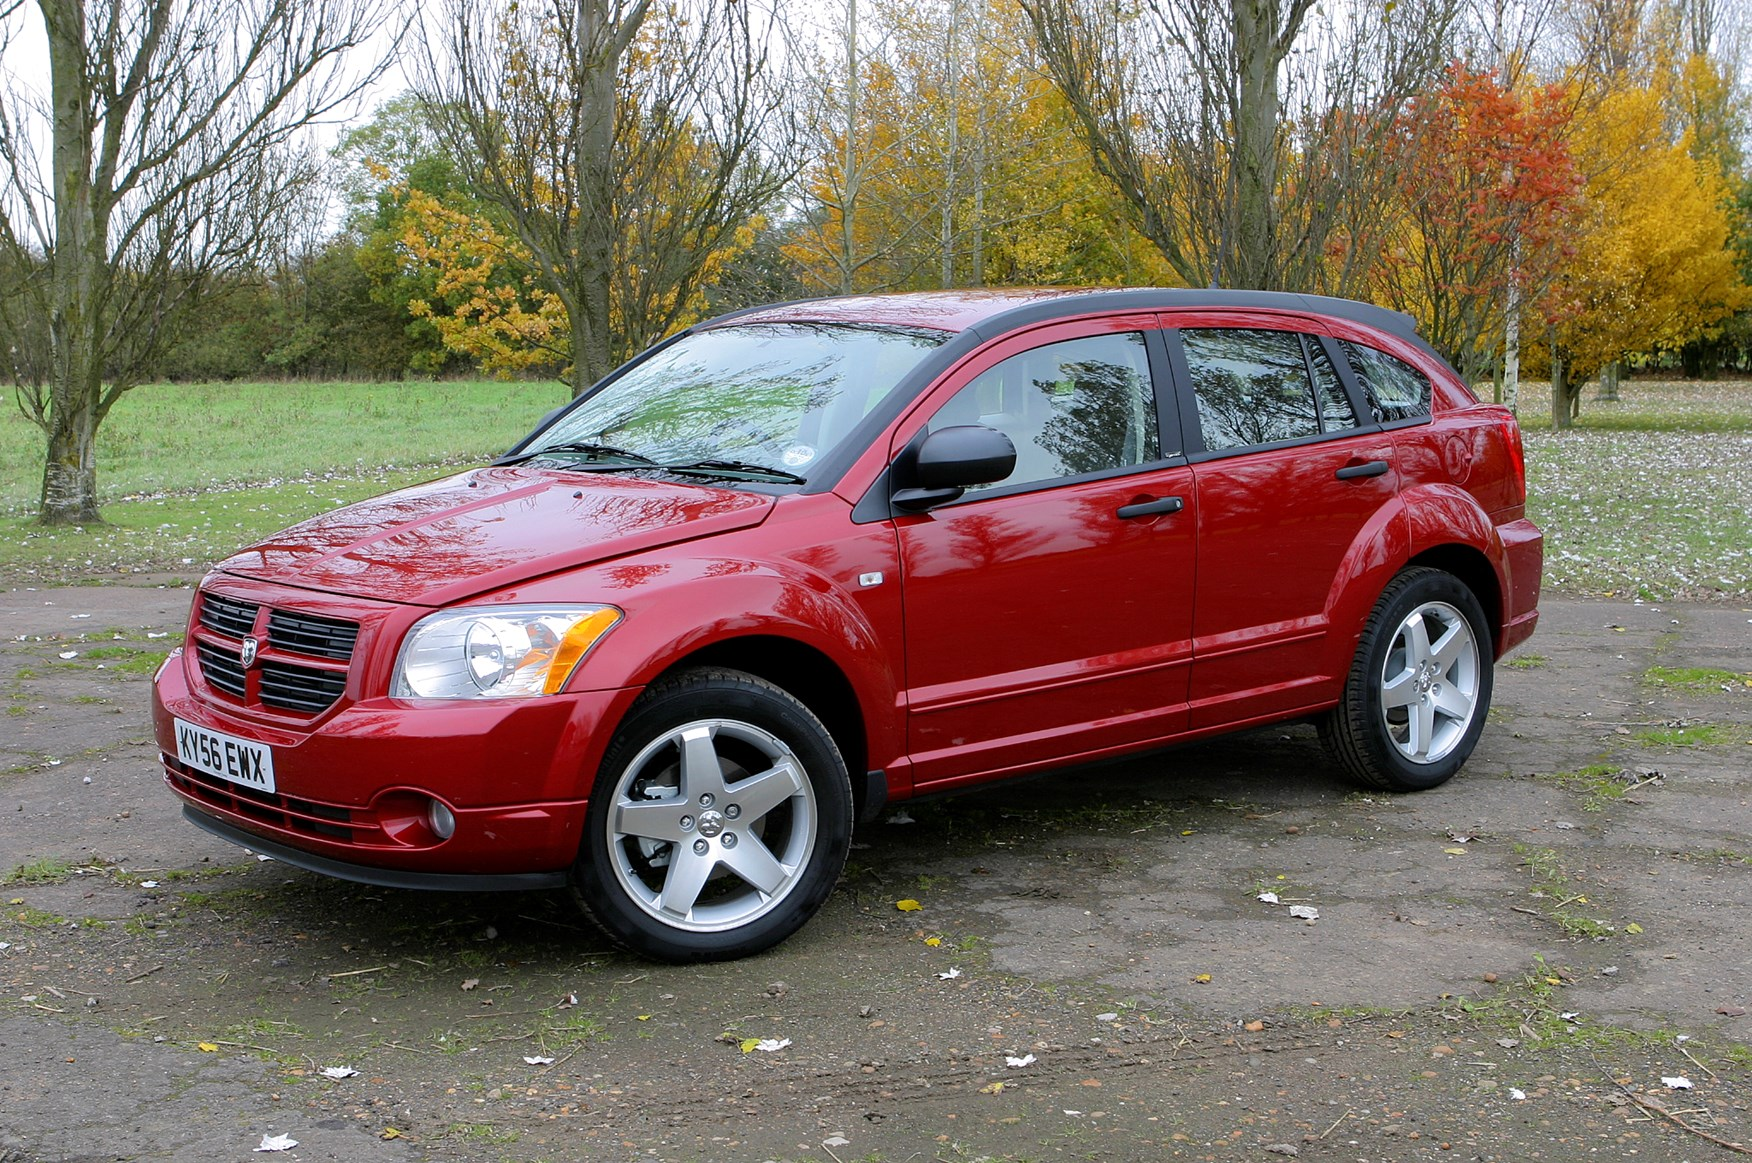 Dodge Caliber Hatchback Review (2006 - 2009) | Parkers